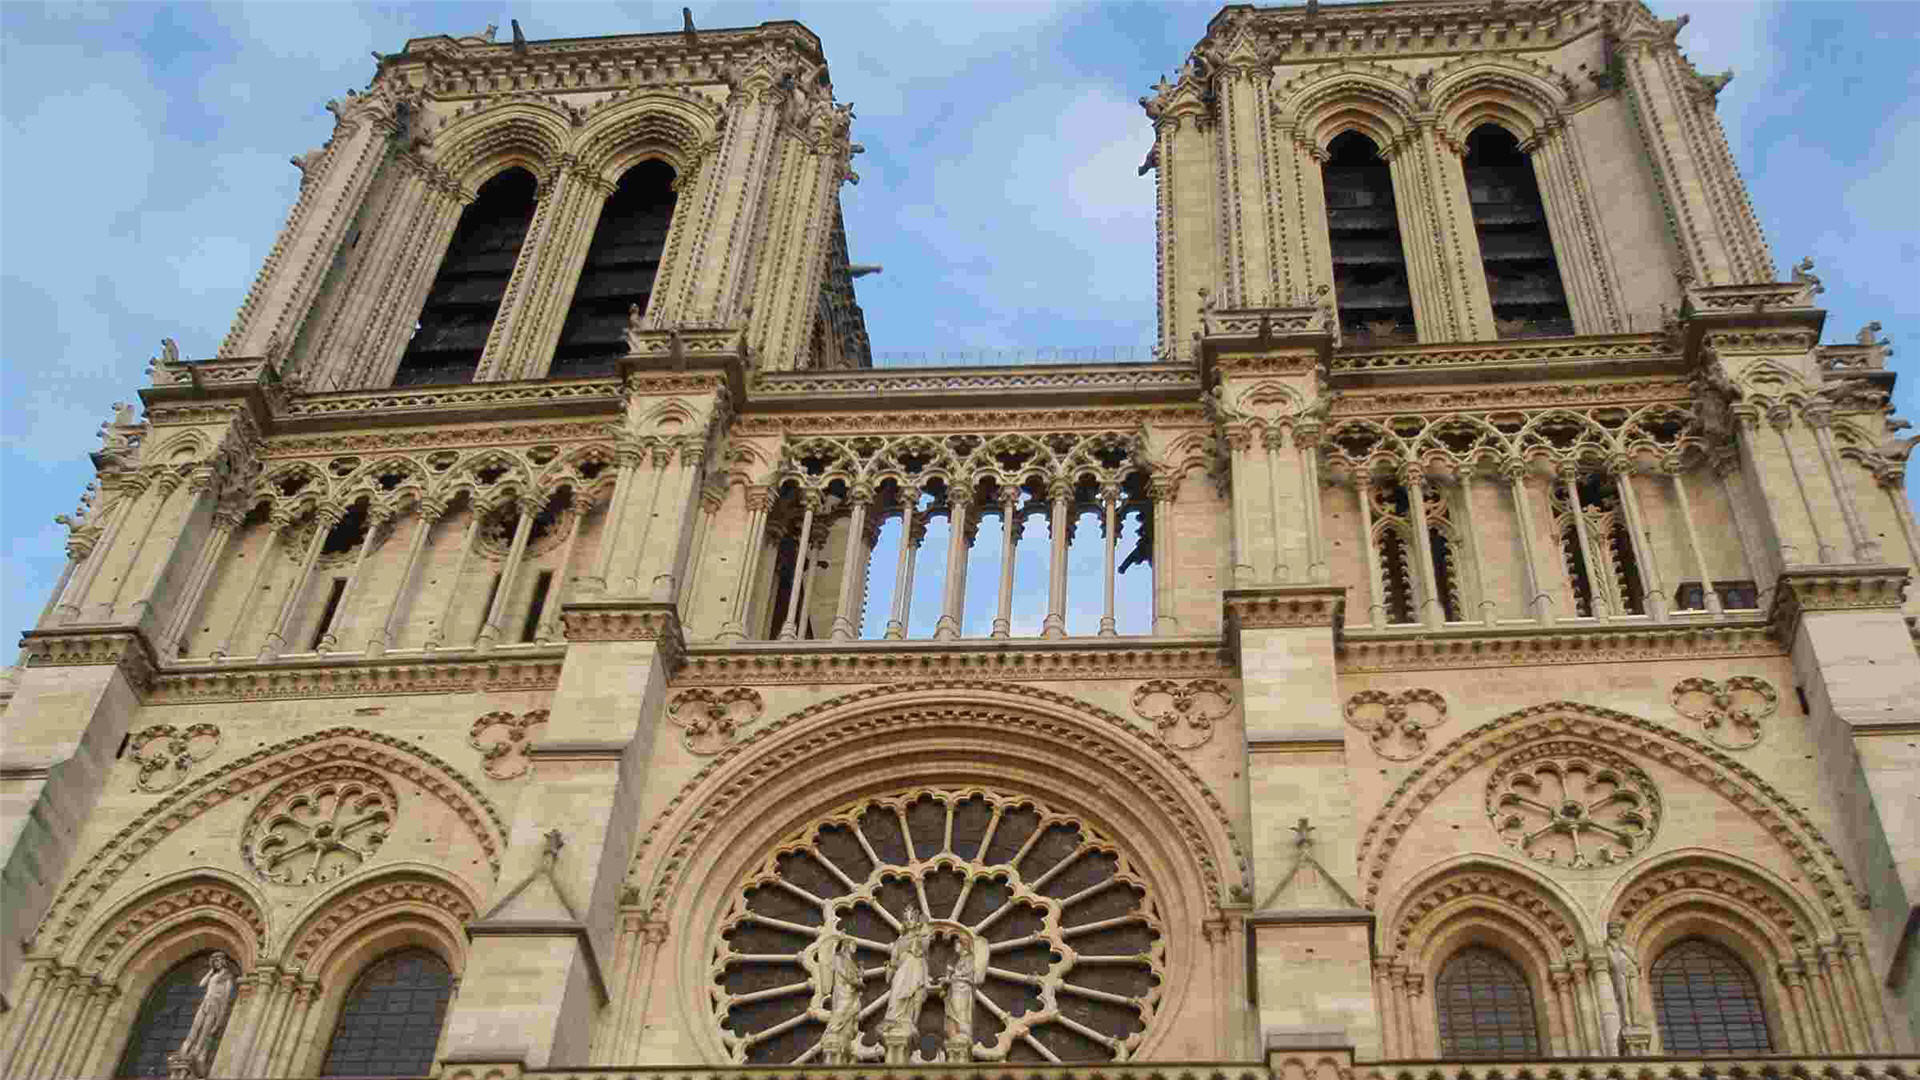 notre dame cathedral essays Aboutthe notre dame cathedral anthropology essaythe notre dame tips for notre short essay prompt now, notre dame asks you to give find examples that match.